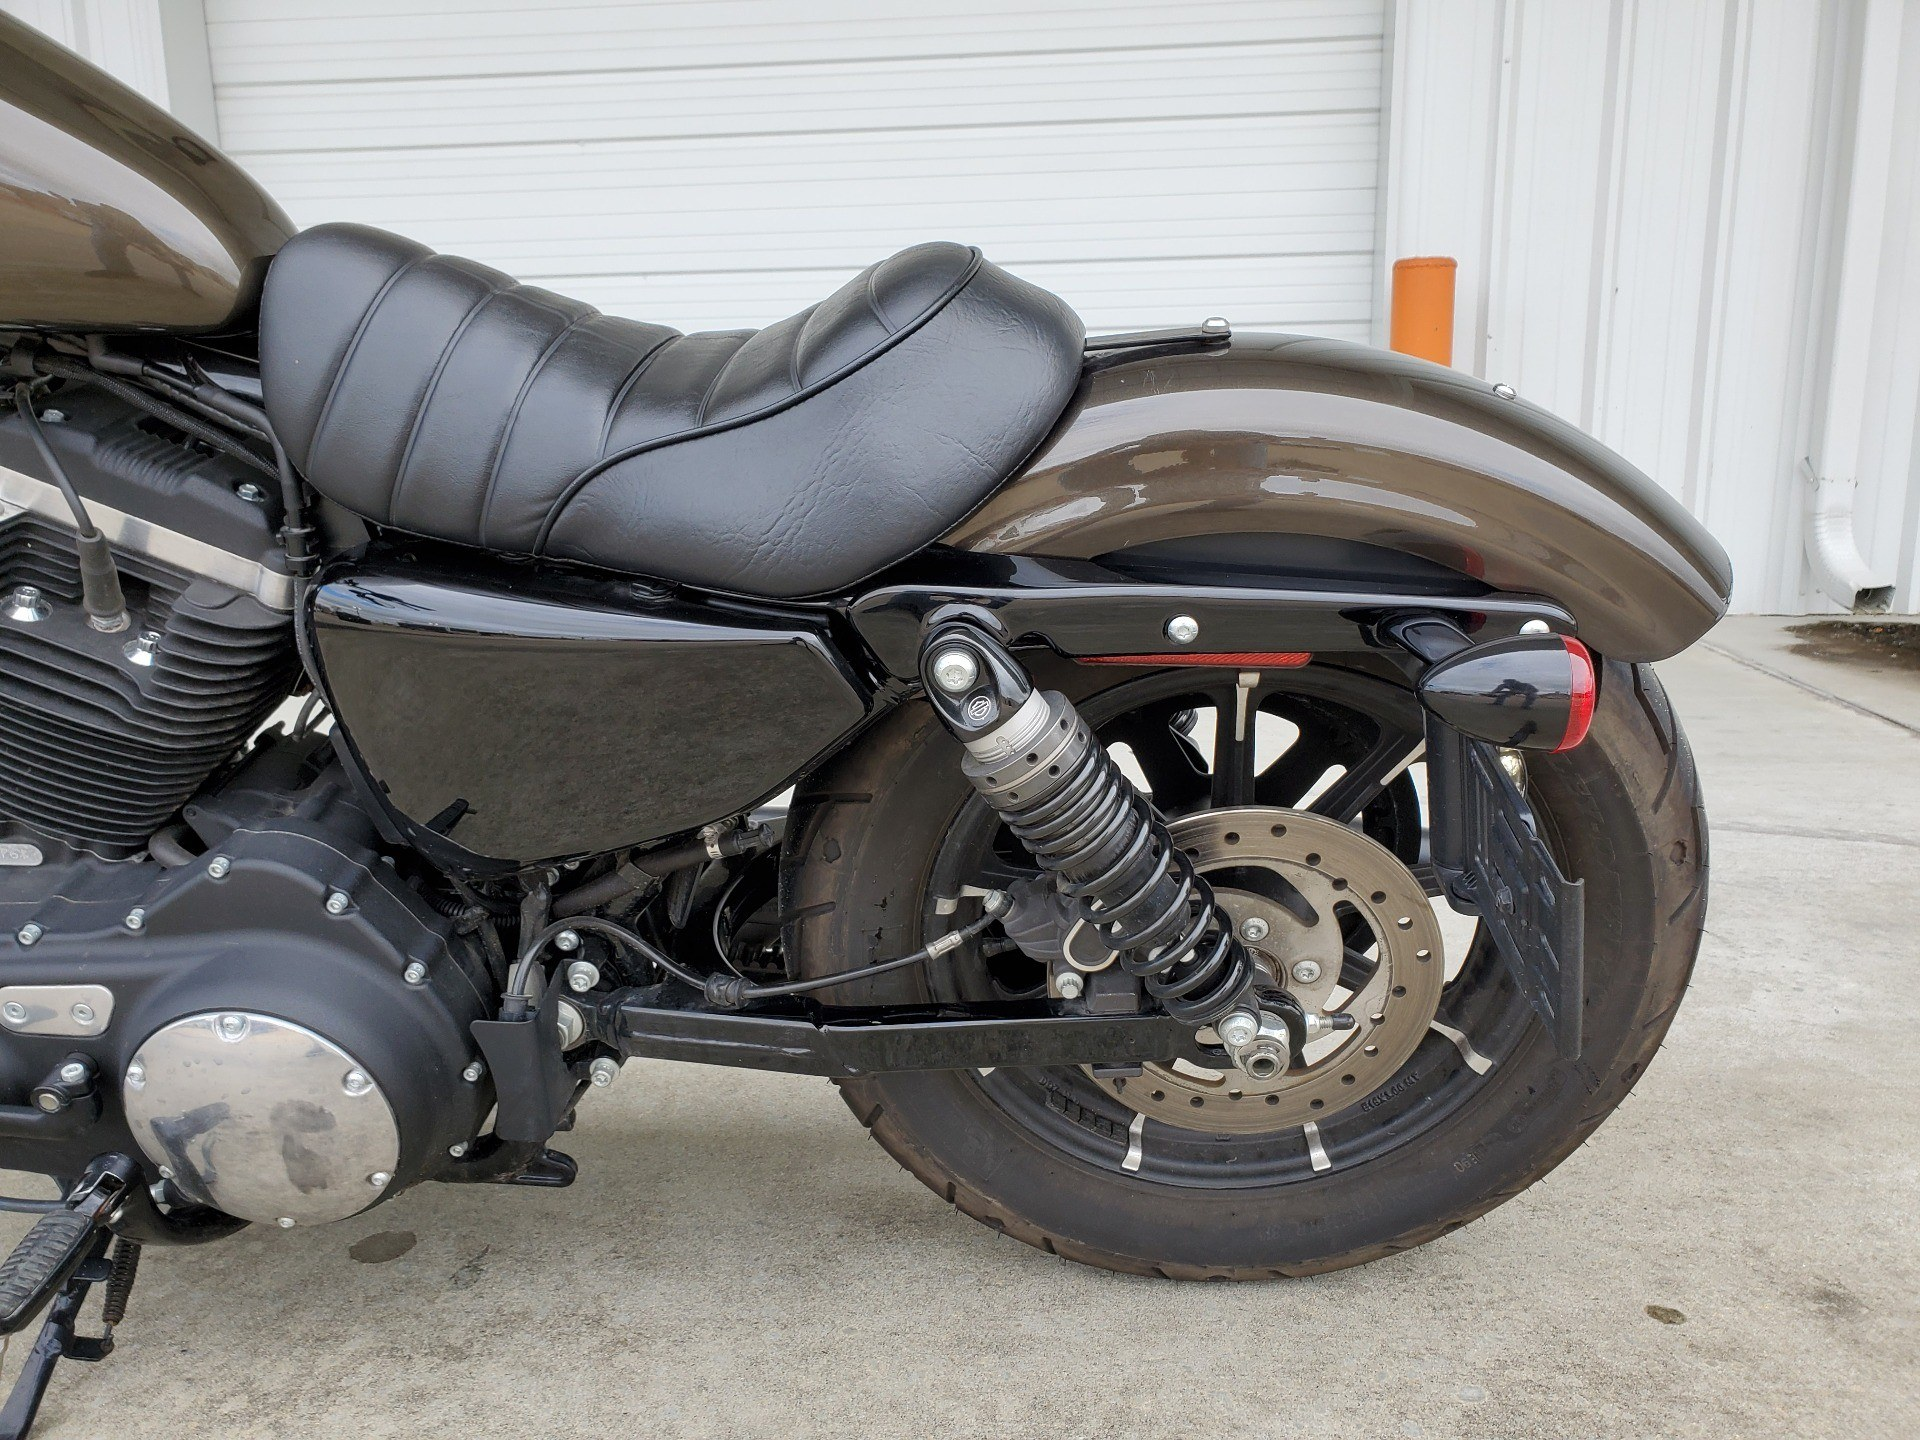 2020 Harley Sportster Iron 883 for sale - Photo 8